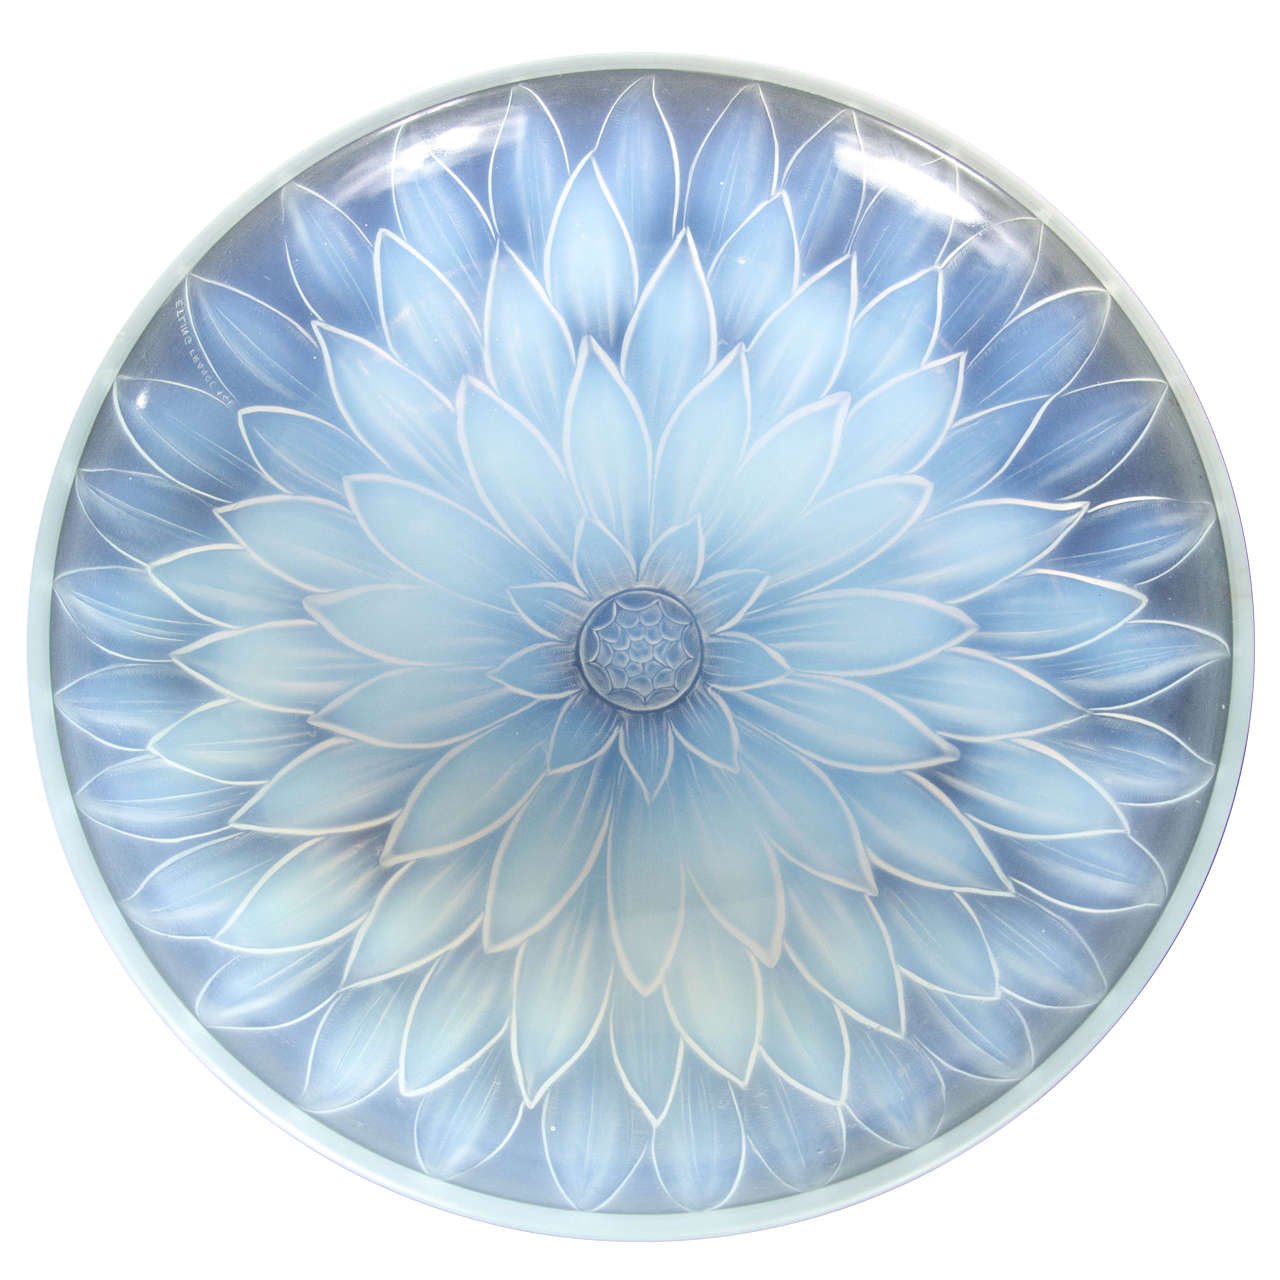 Stunning Art Deco Relief Glass Bowl by Etling at 1stdibs